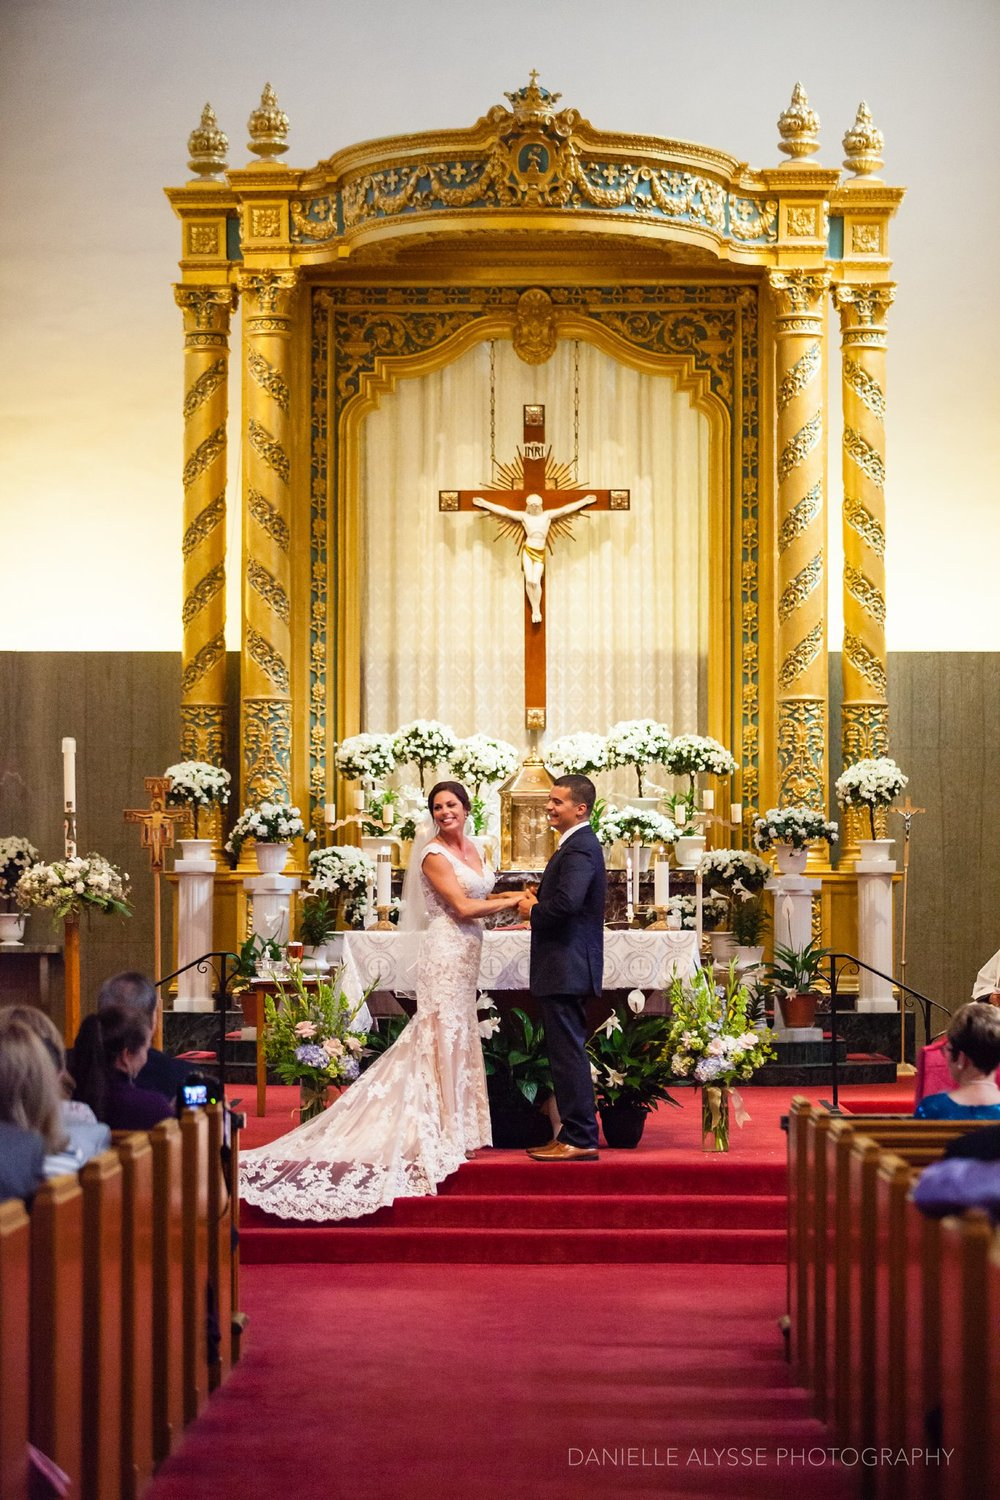 170429_blog_kimberly_ben_wedding_san_mateo_curiodyssey_danielle_alysse_photography_sacramento_photographer0547_WEB.jpg